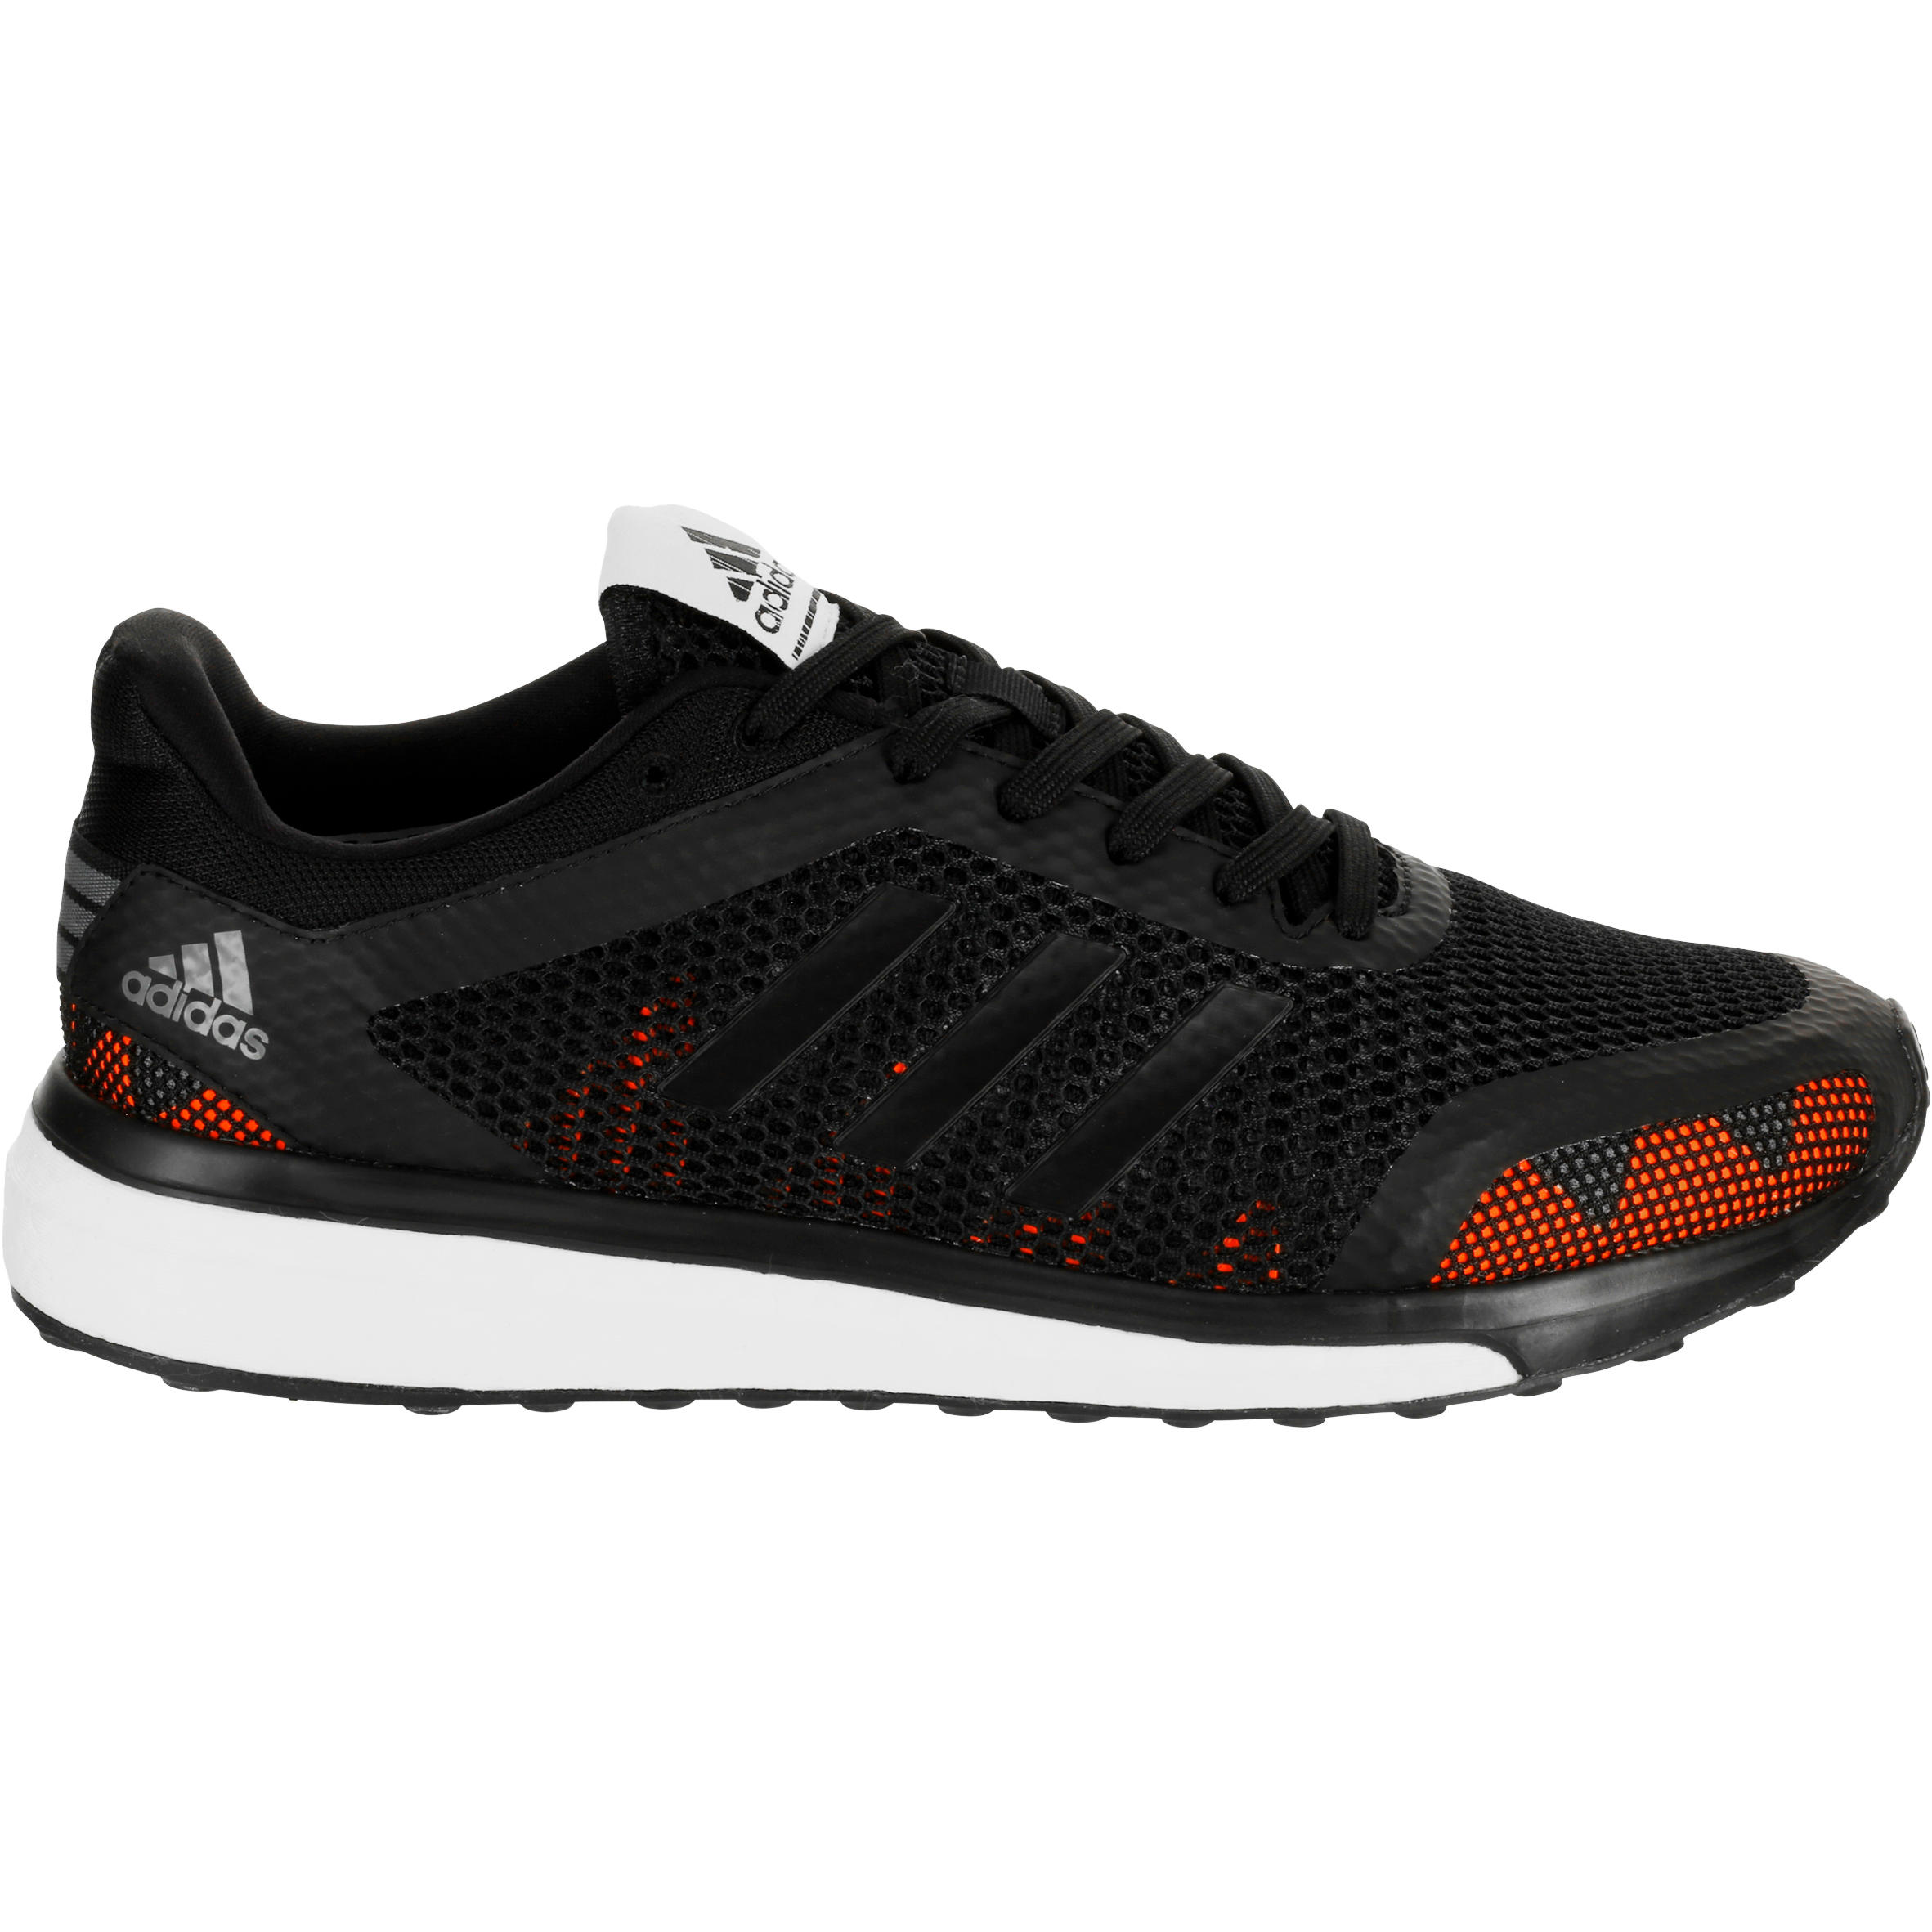 Adidas Noir Chaussures Homme Running Response Plus Boost ChtsQrd